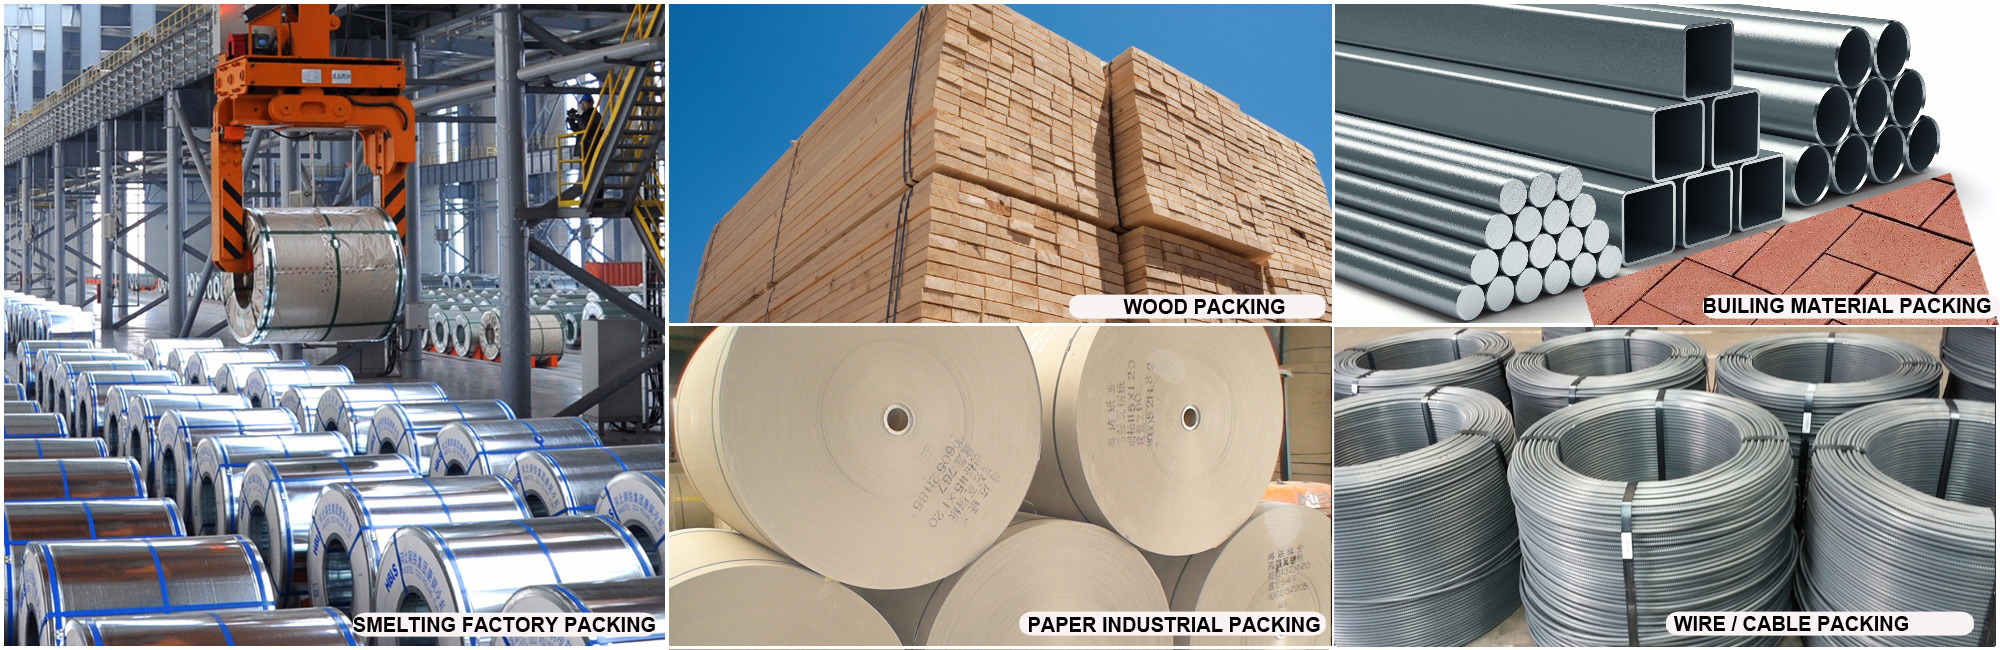 industrial packing steel strapping